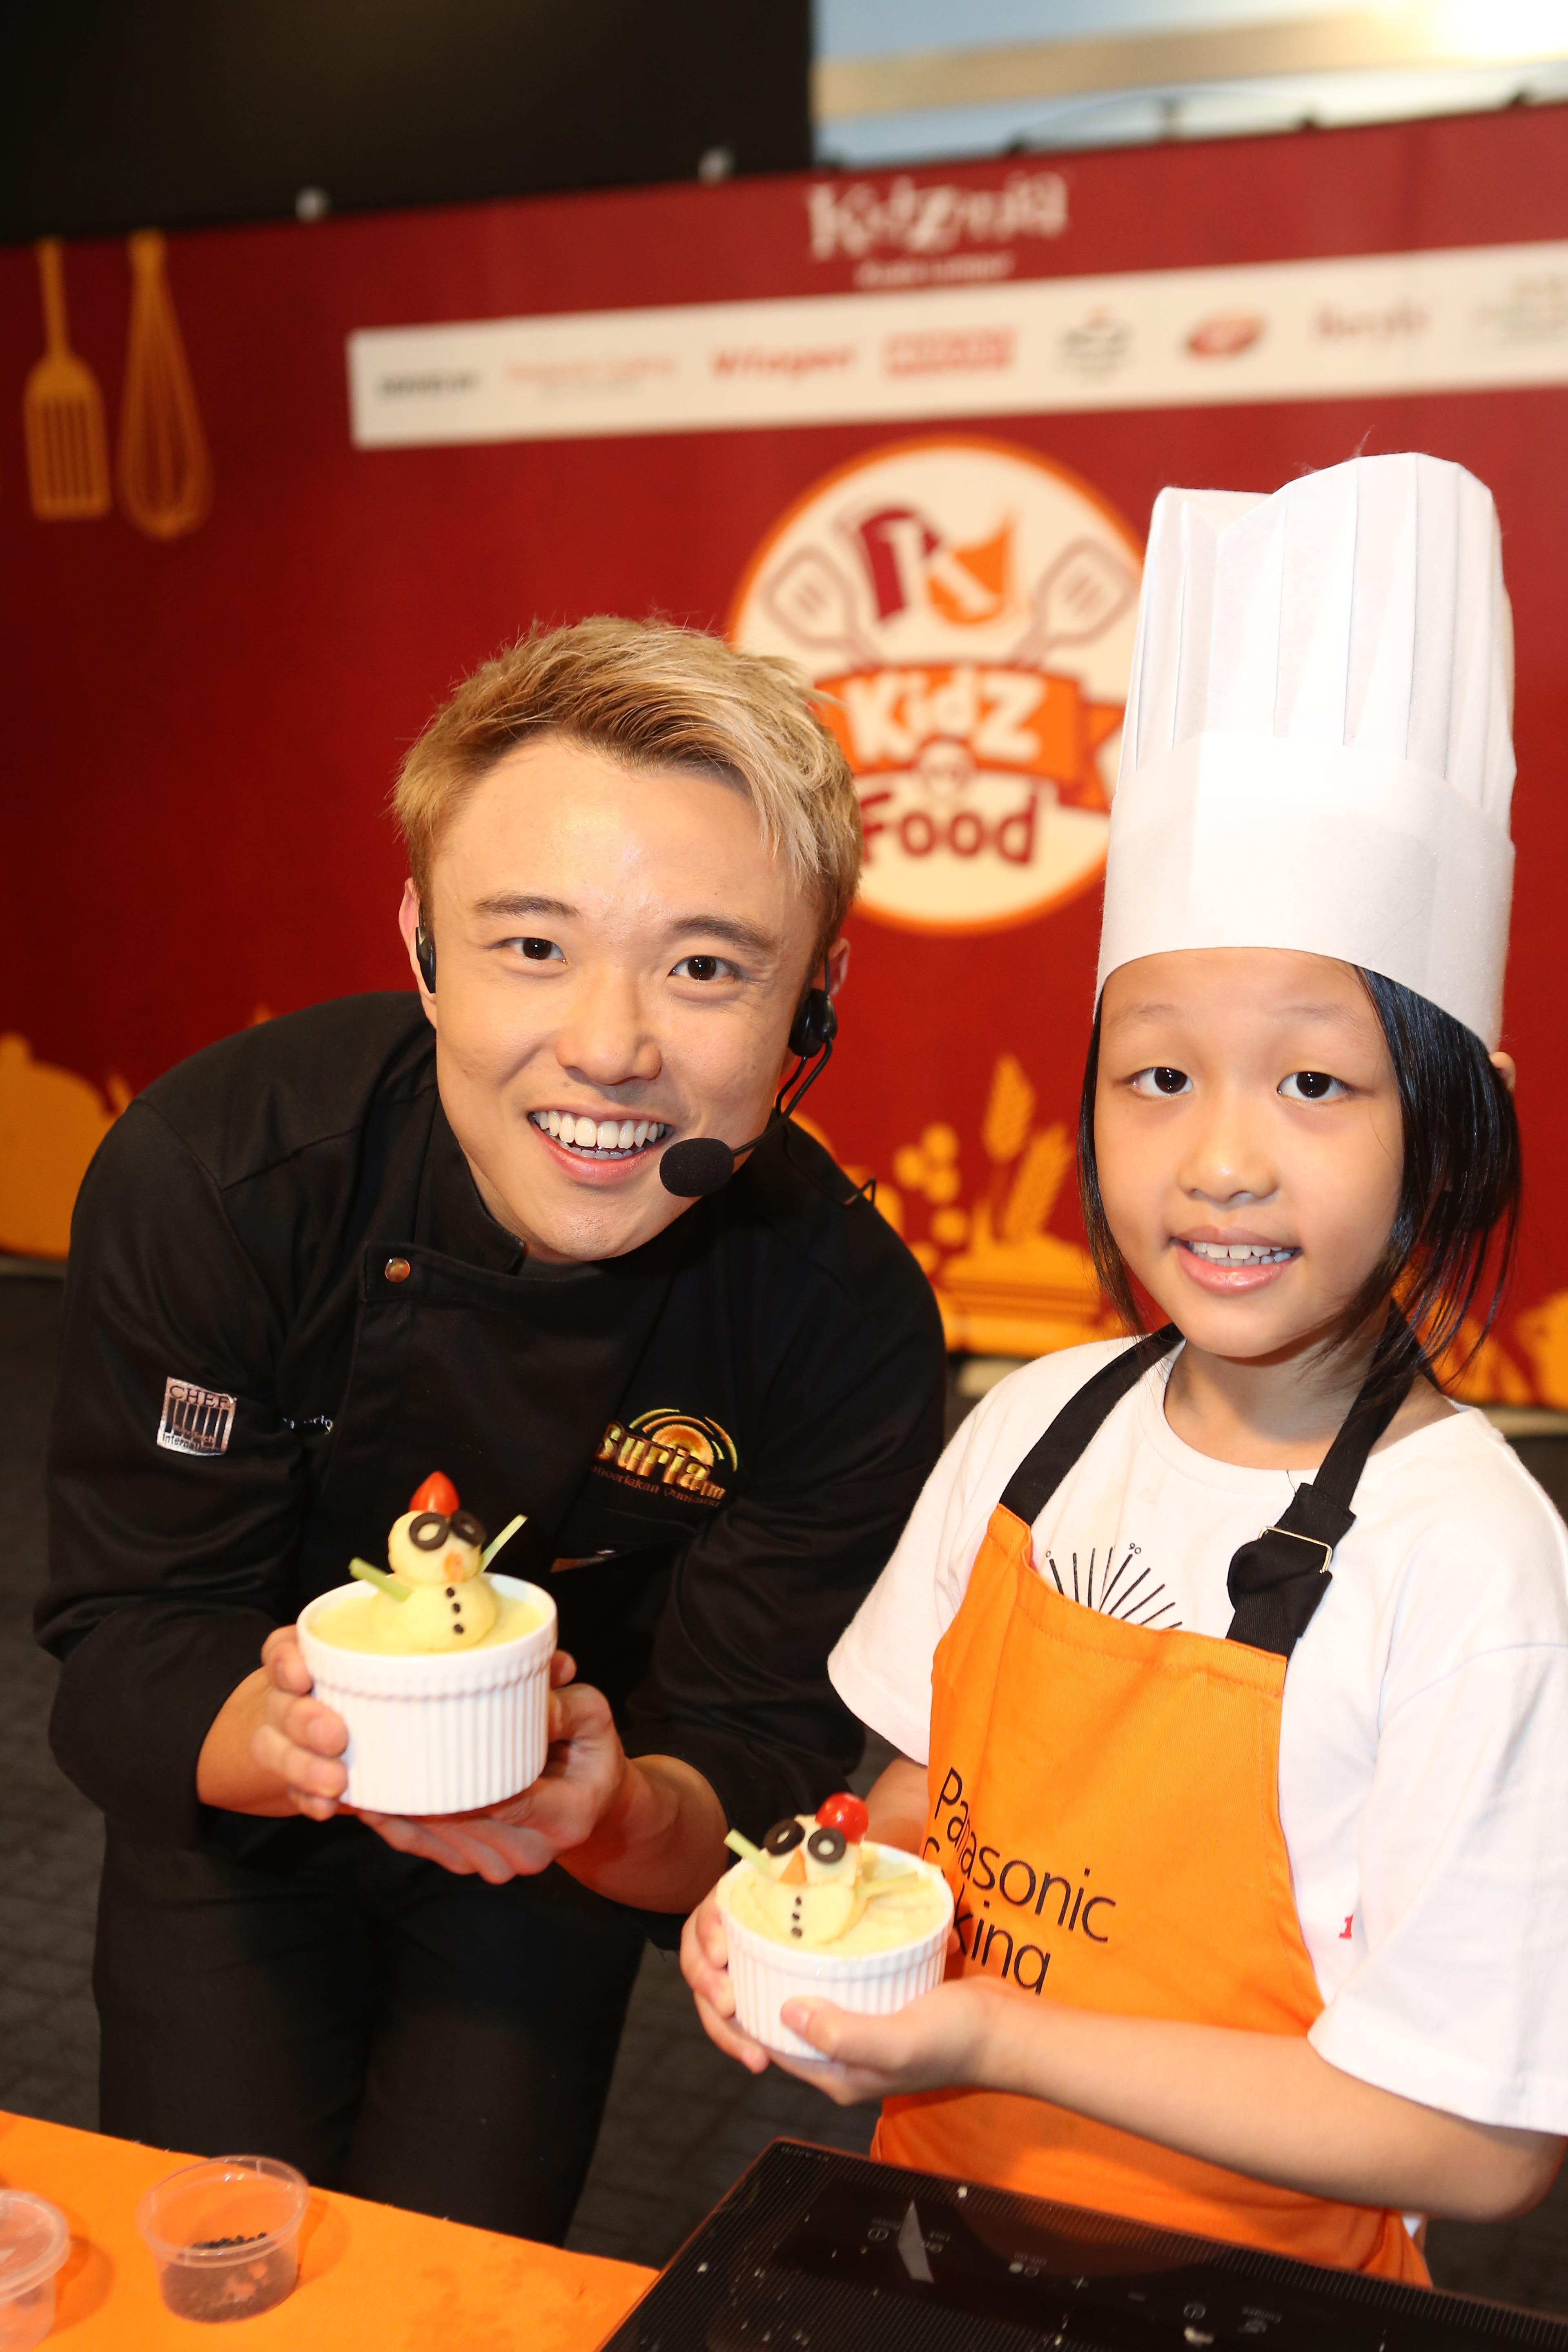 Celebrity chef, Abang Brian, makes a snowman shepherd's pie with his little sous-chef.